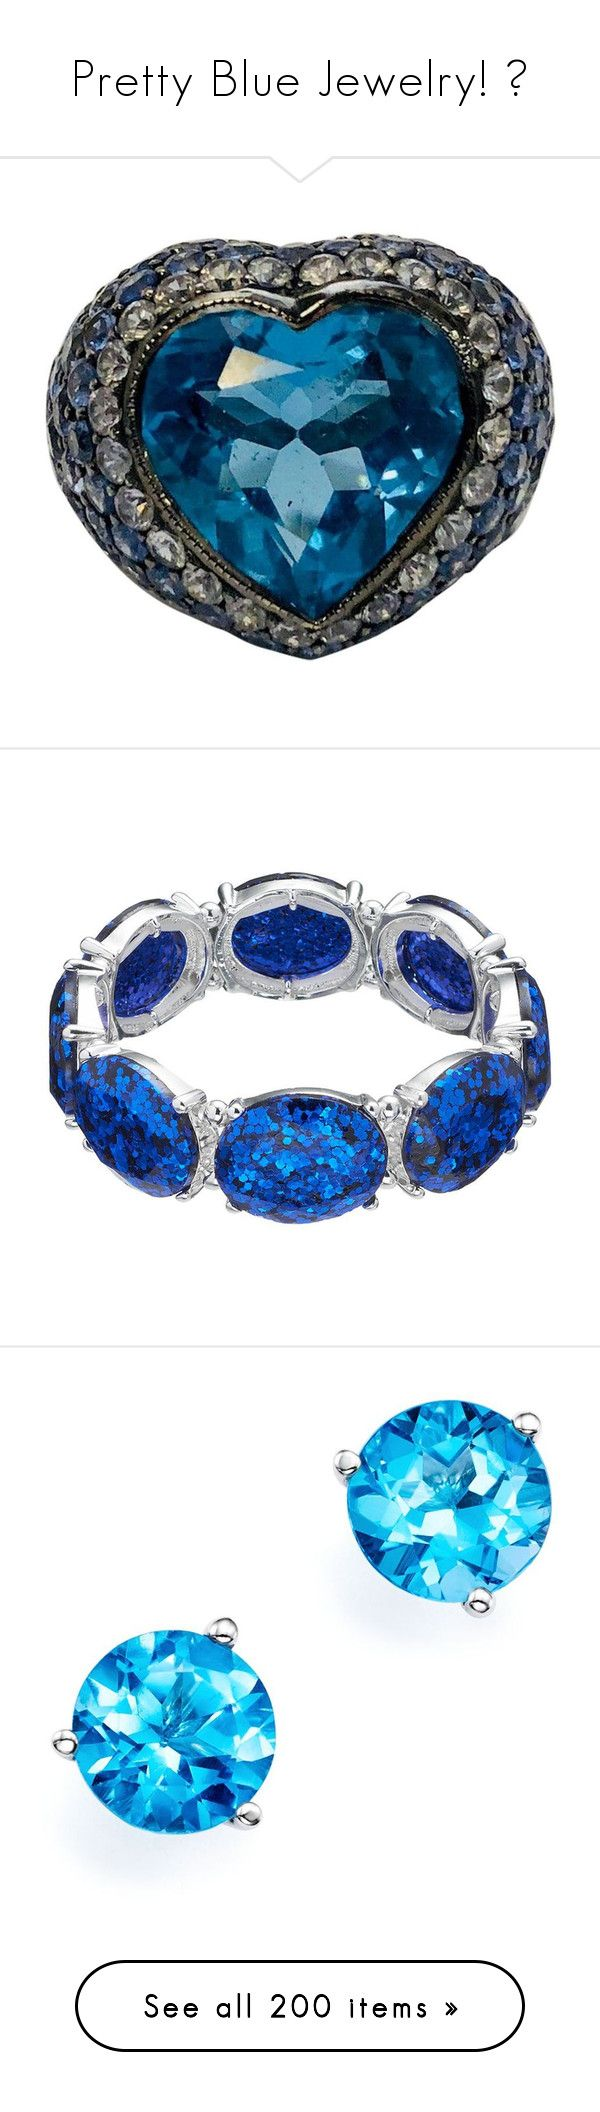 """Pretty Blue Jewelry! 💙"" by vahrendsen1988 ❤ liked on Polyvore featuring Blue, jewelry, rings, cocktail rings, white, sapphire heart ring, diamond rings, 18k white gold ring, blue topaz diamond ring and white gold rings"